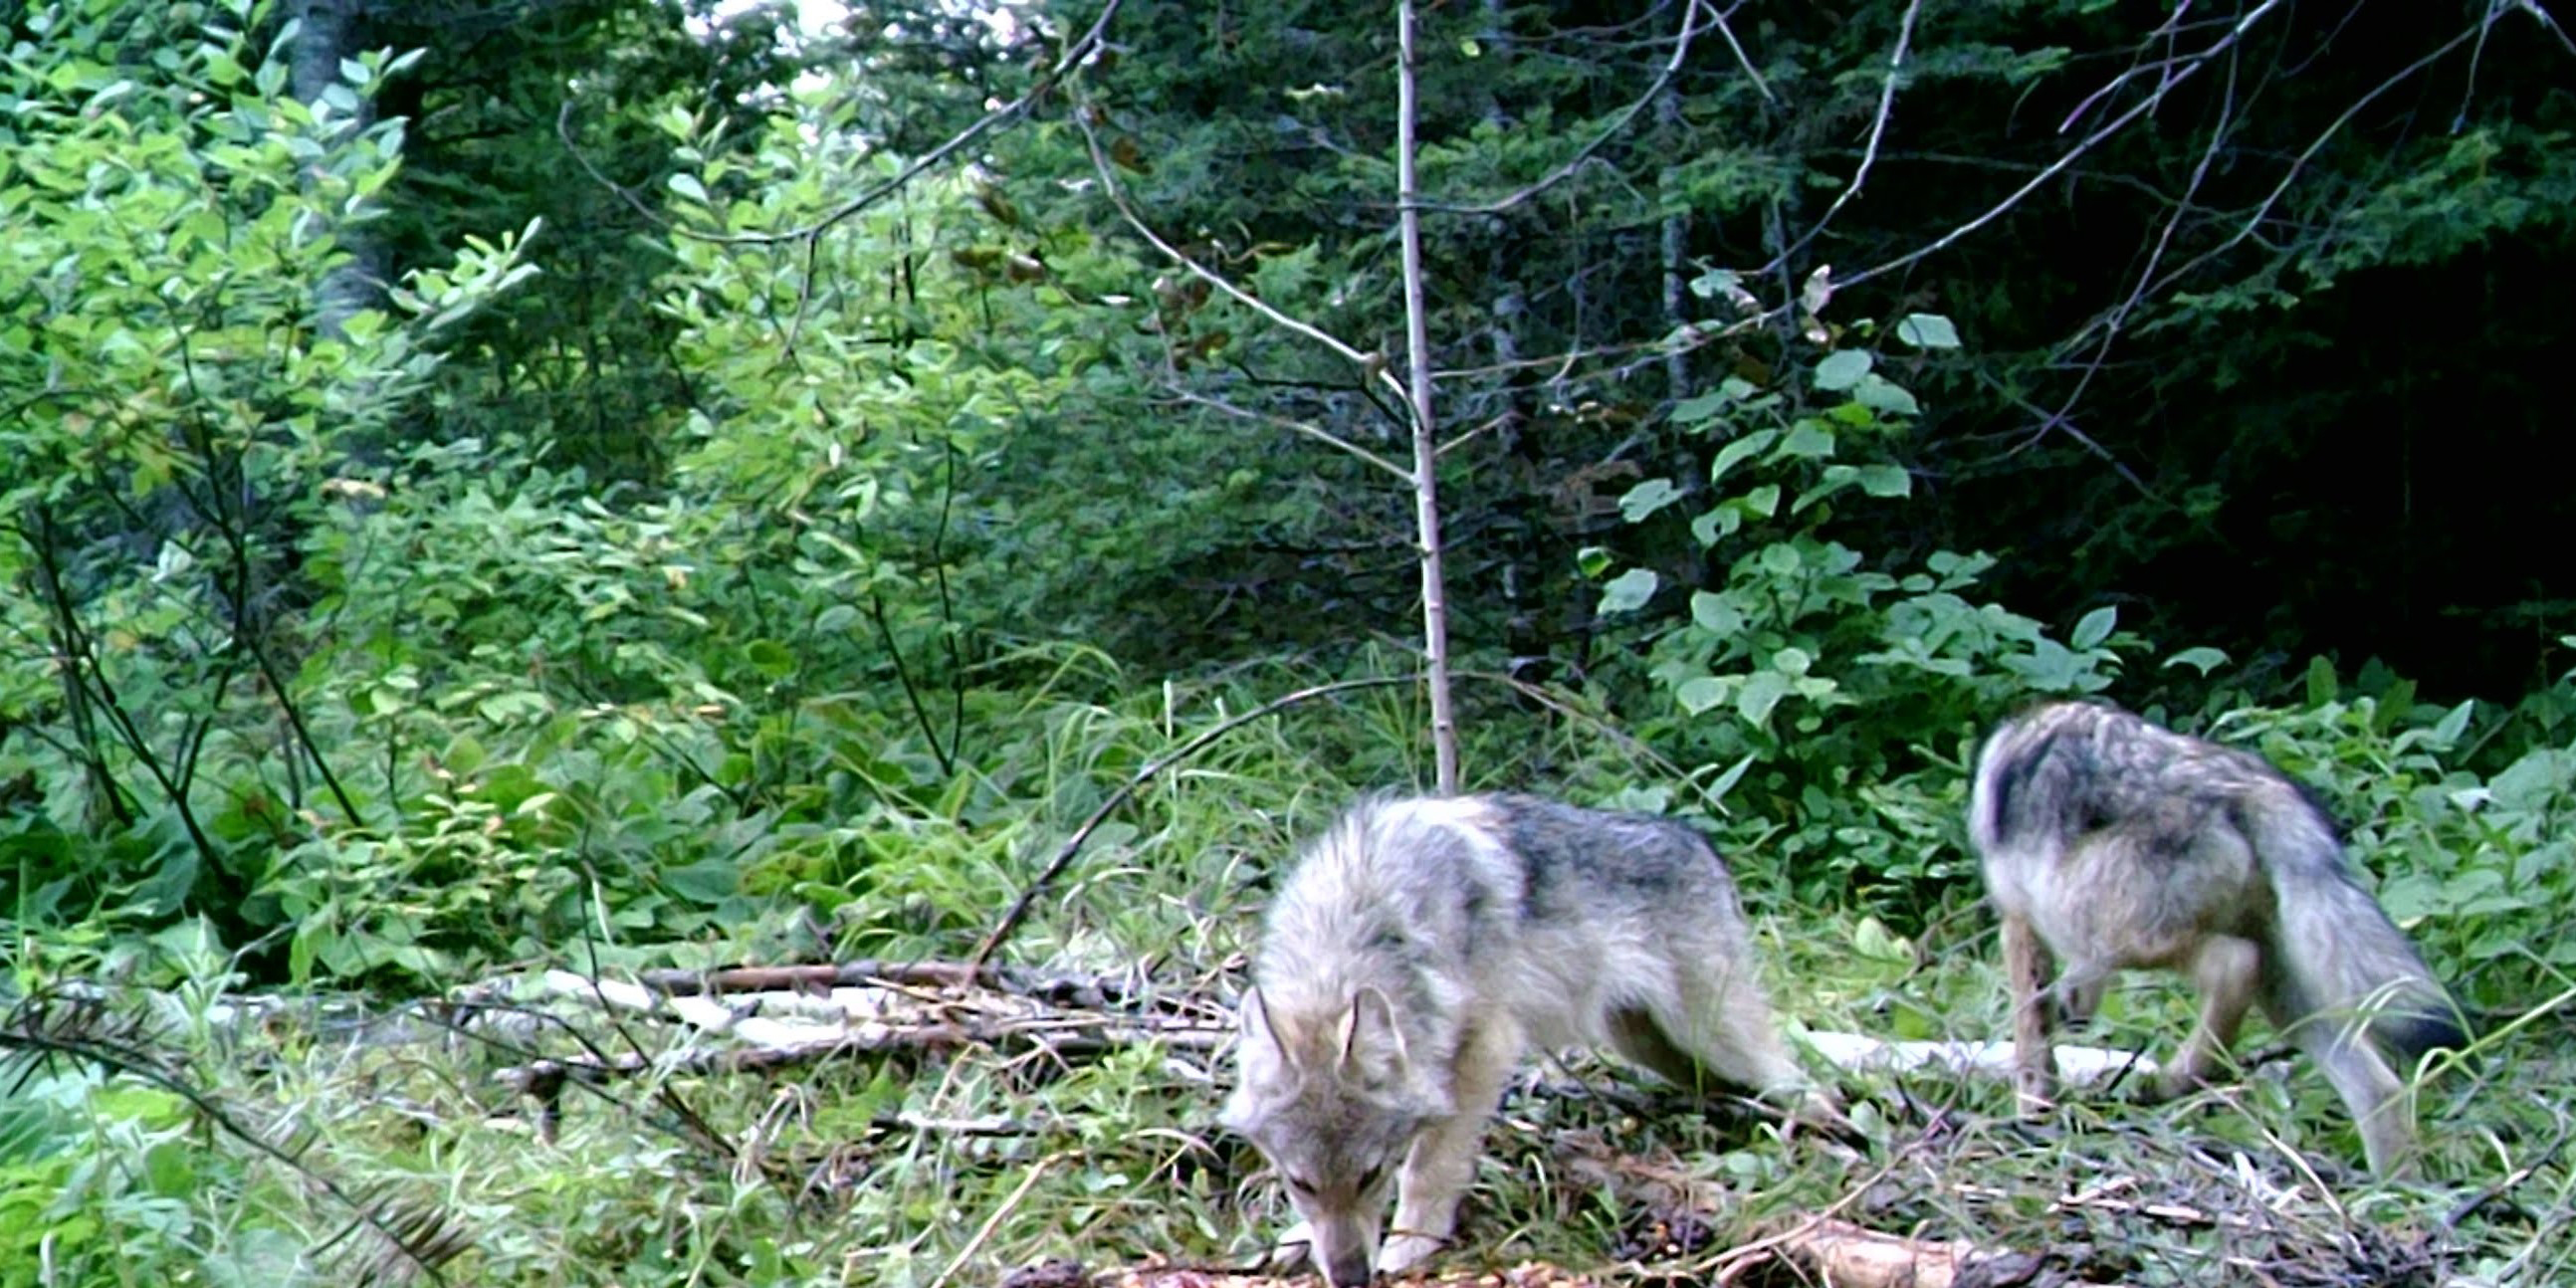 Feds REMOVE Gray Wolves from Protection of Endangered Species Act